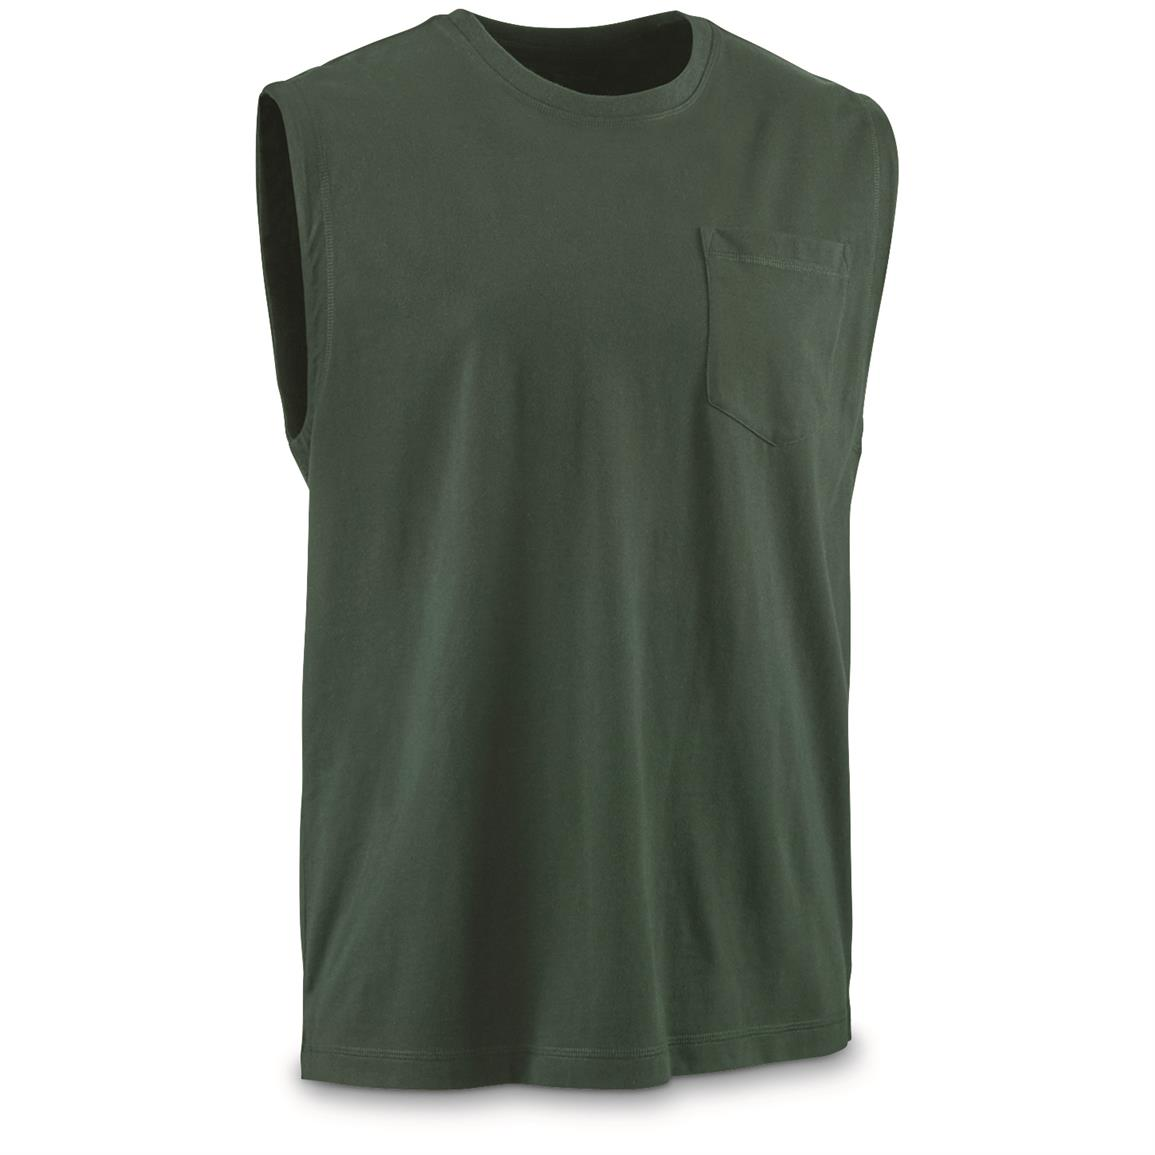 Guide Gear Men's Stain Kicker Sleeveless Pocket T Shirt With Teflon, Pine